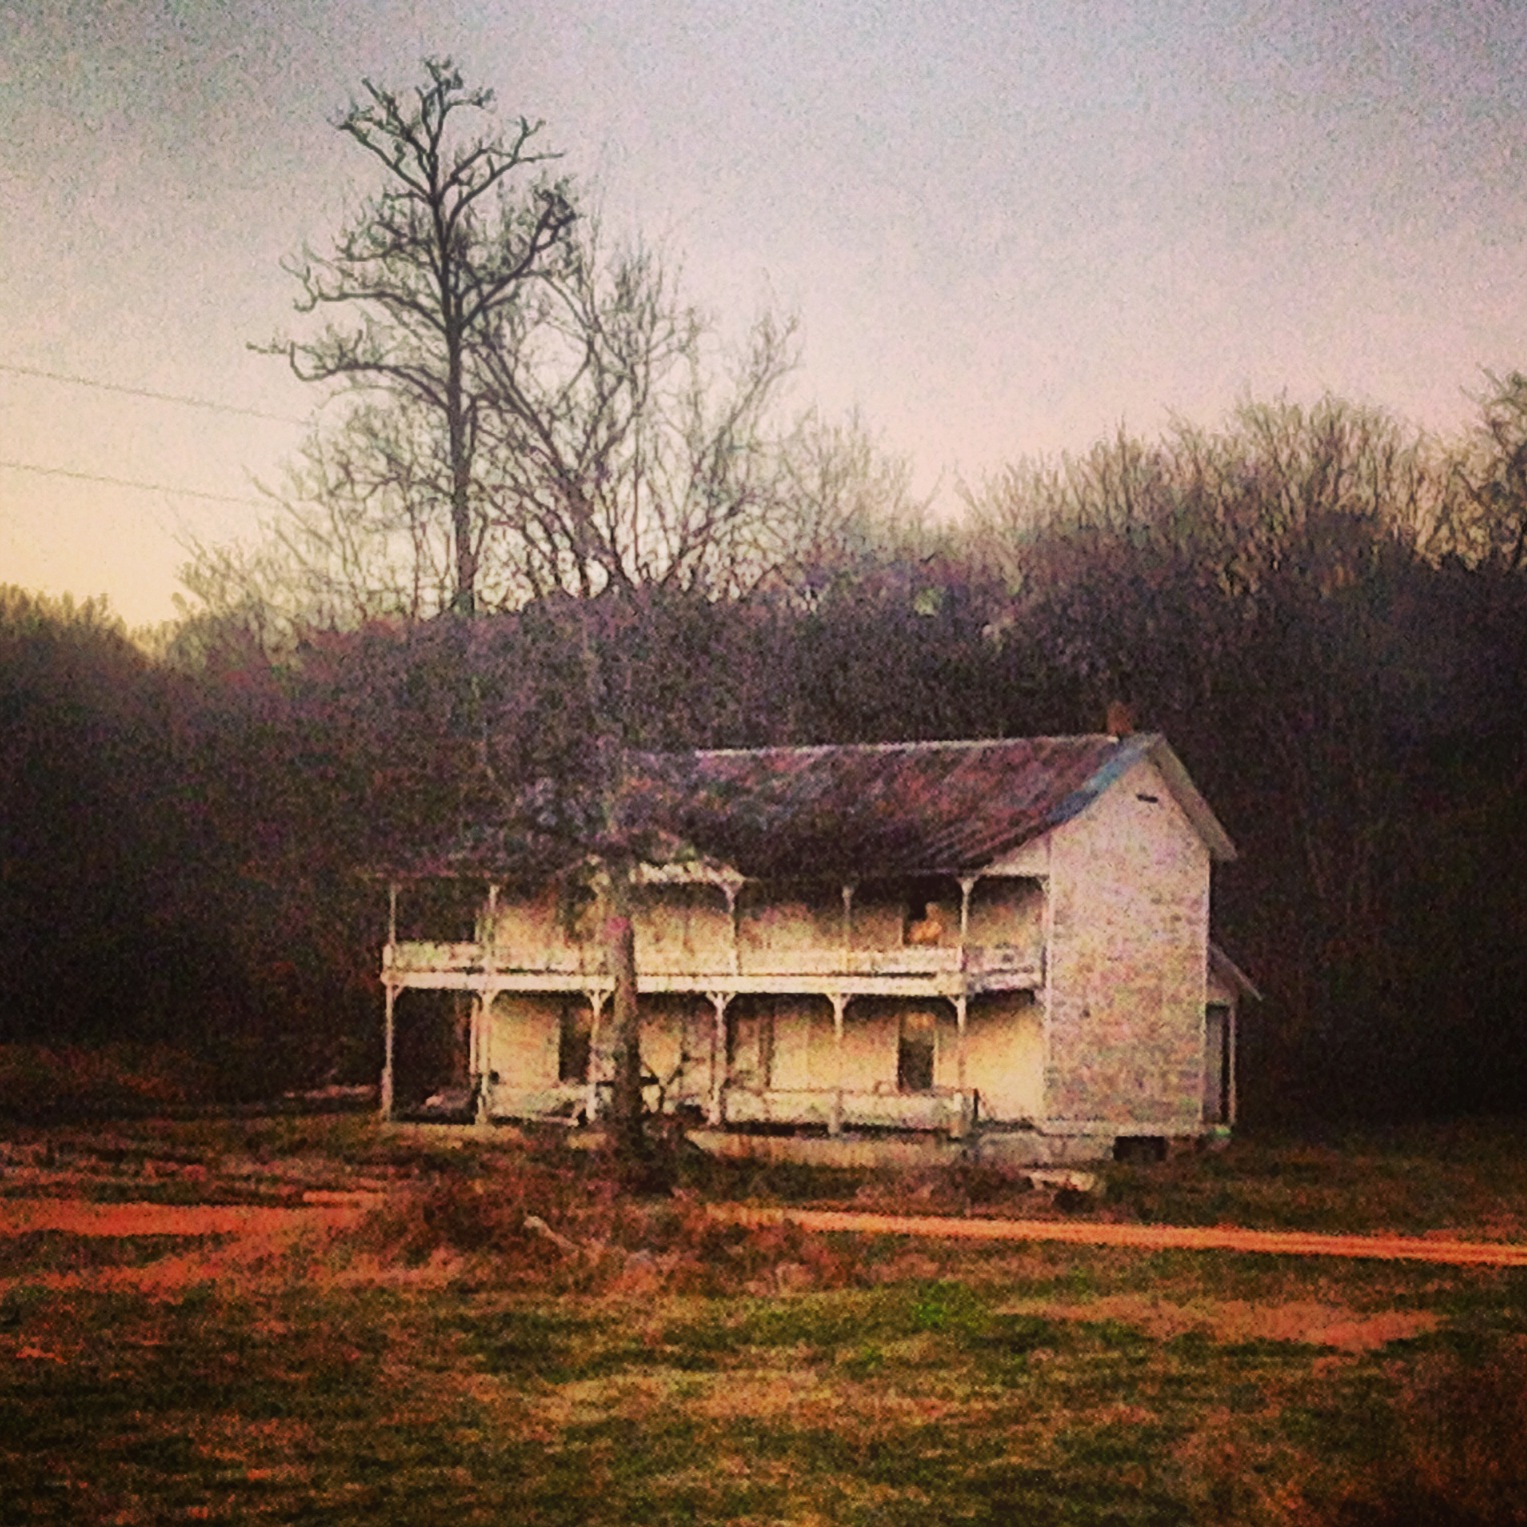 off the beaten path in east texas down country roads